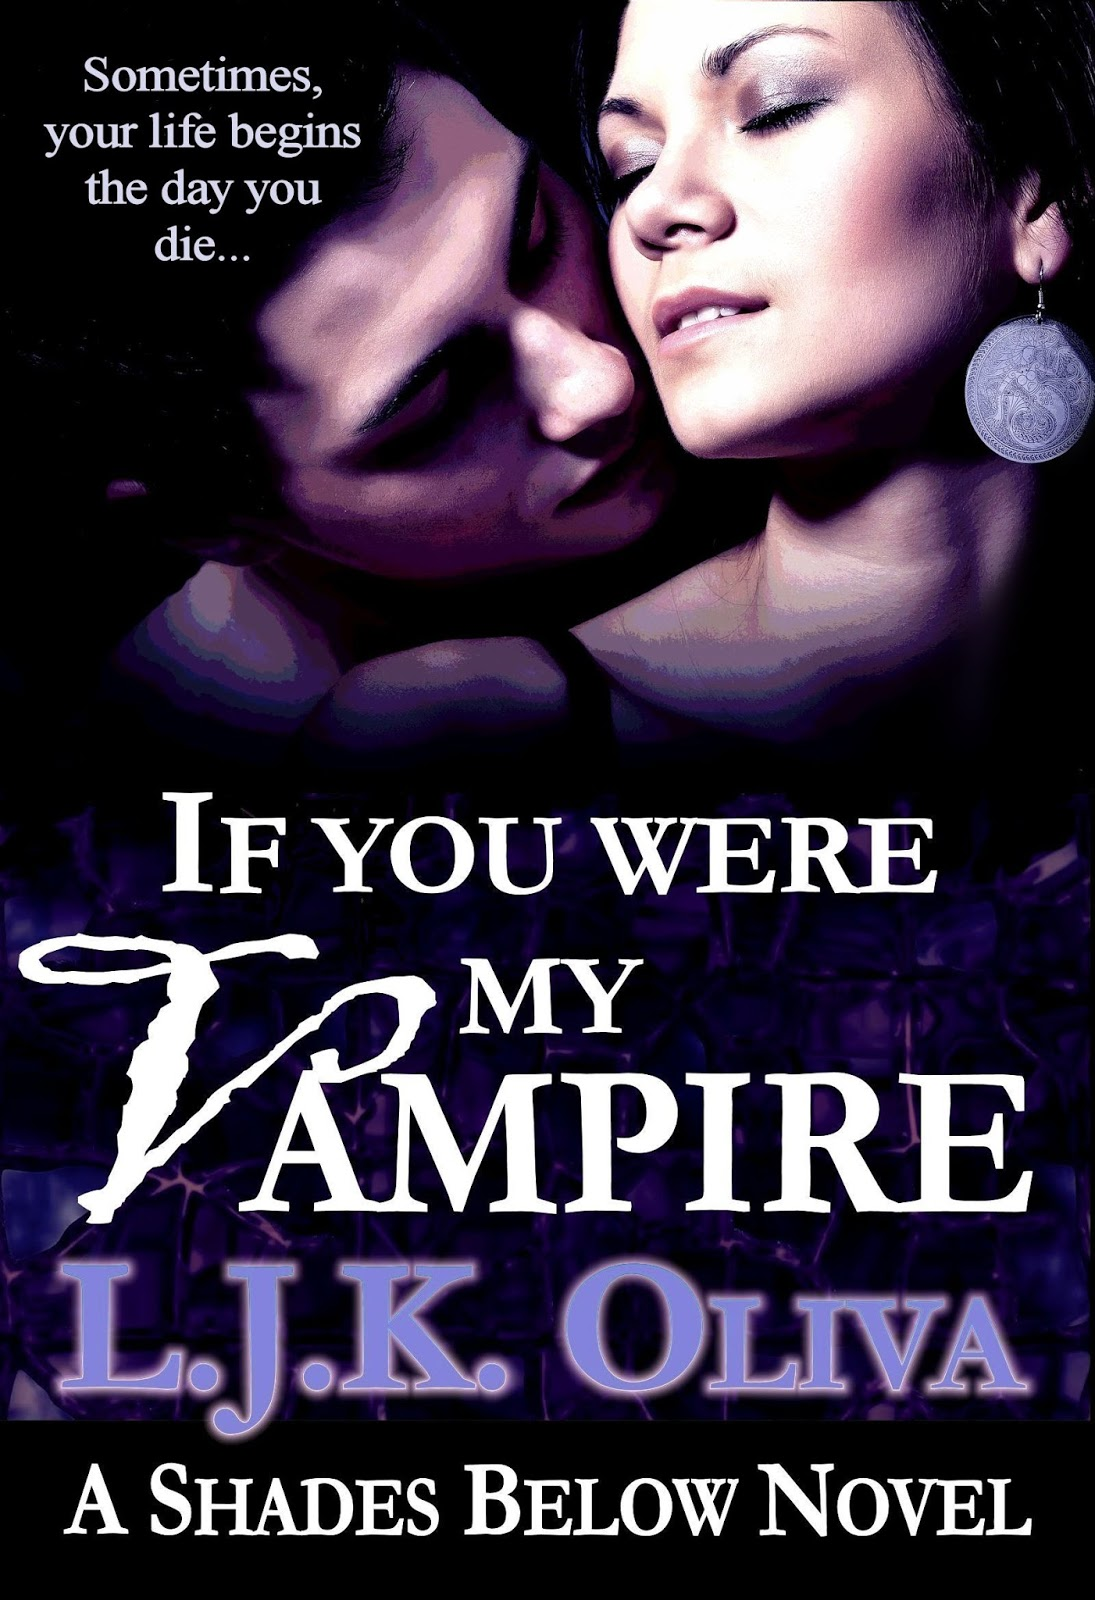 Apr 3rd Ljk Oliva Author Of If You Were My Vampire!